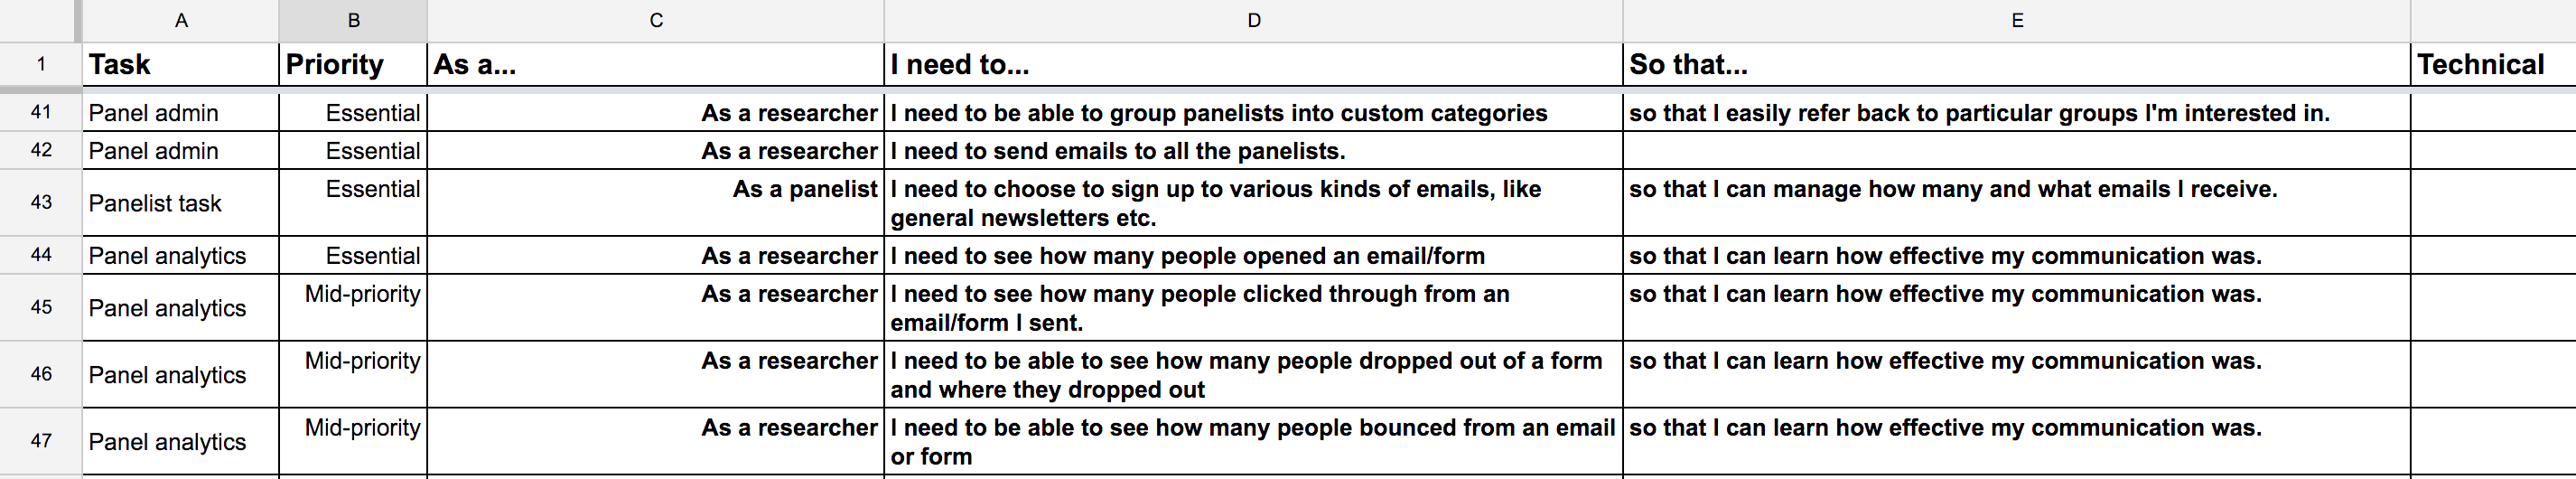 Image of a spreadsheet of user needs. For example, As a researcher, I need to see how many people clicked on an email/form so I can learn how effective my communication was.